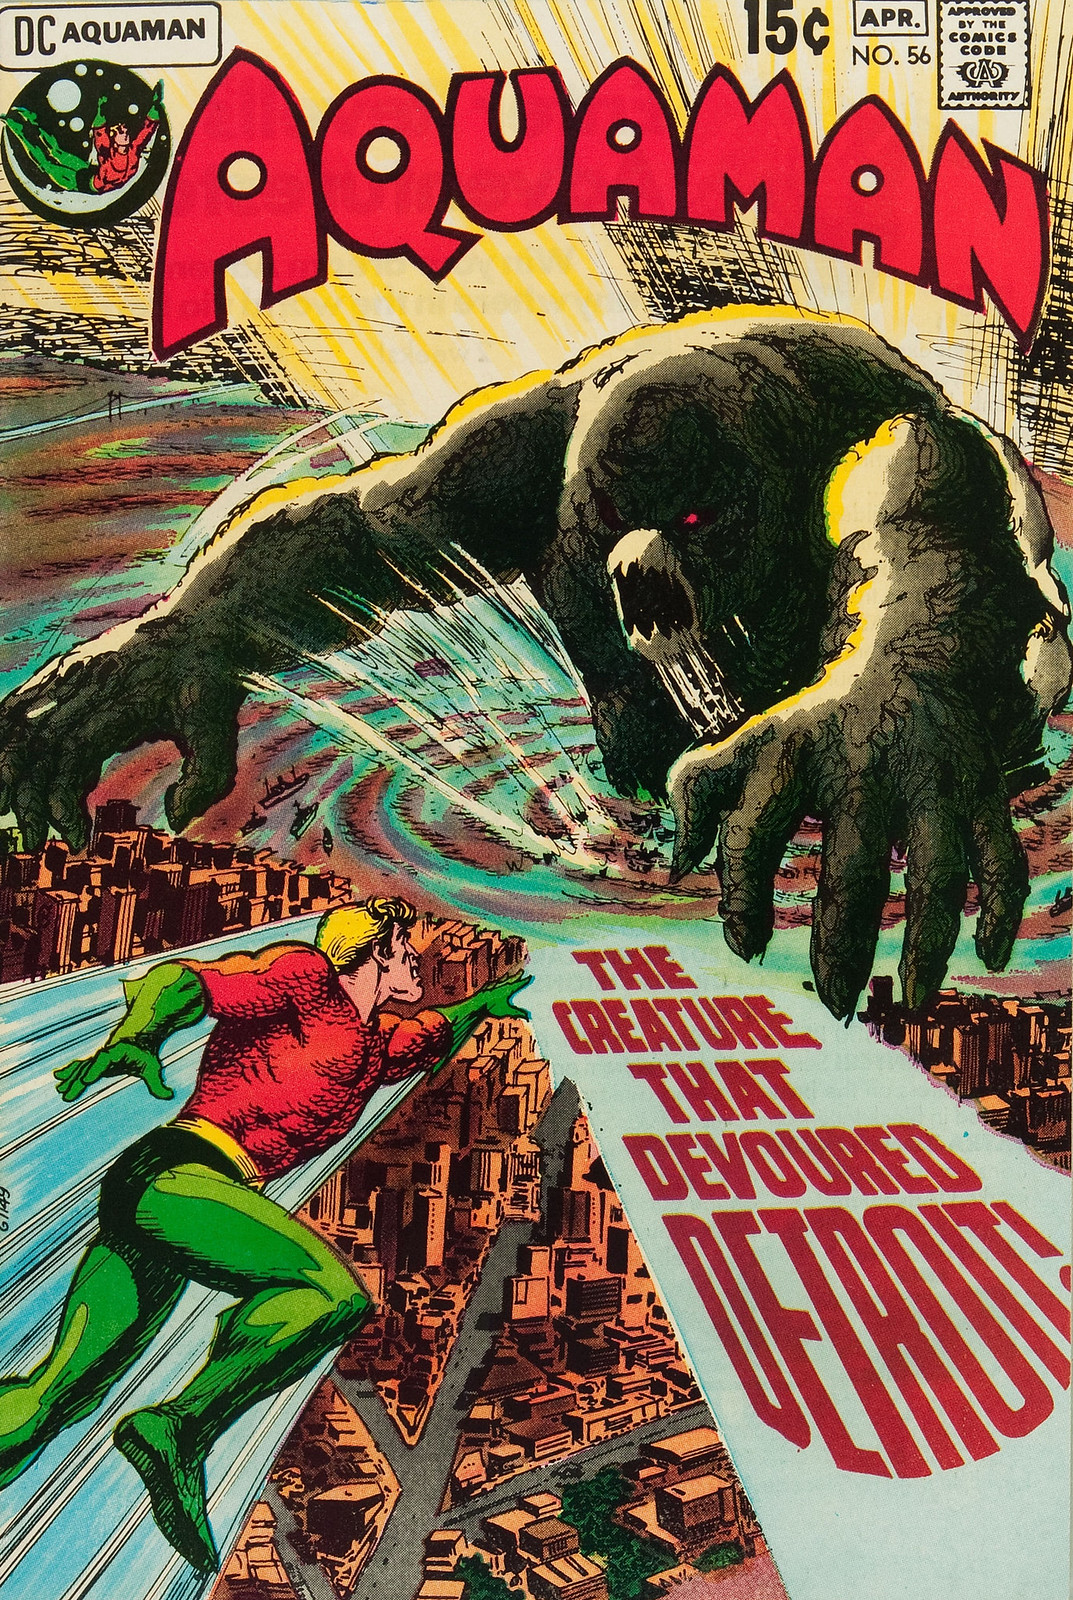 Aquaman #56 (DC, 1971) Nick Cardy Cover